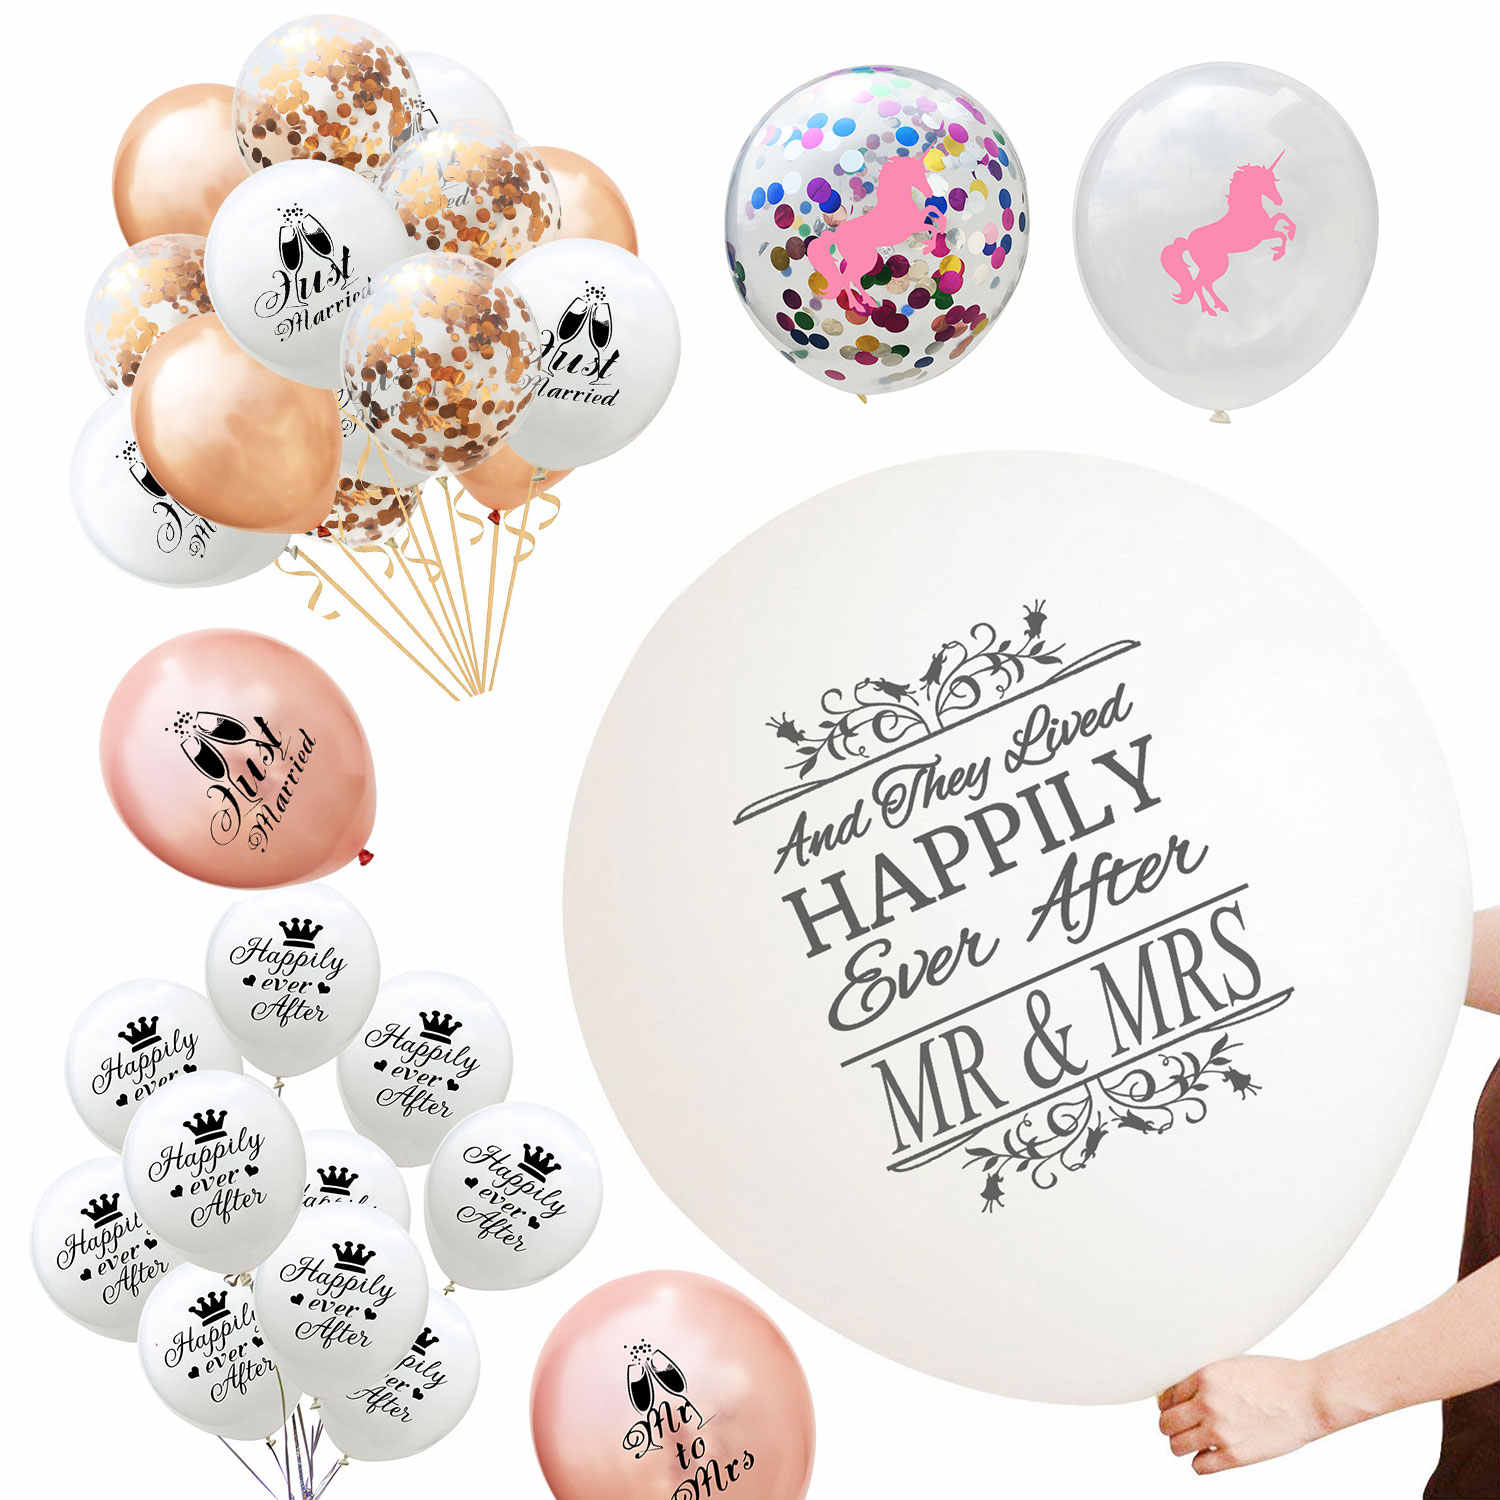 ZLJQ Just Married Wedding Balloon Jumbo Mr & Mrs Balloon Reception Entrance Decor Photo Props - Anniversary Signs Bridal Decor